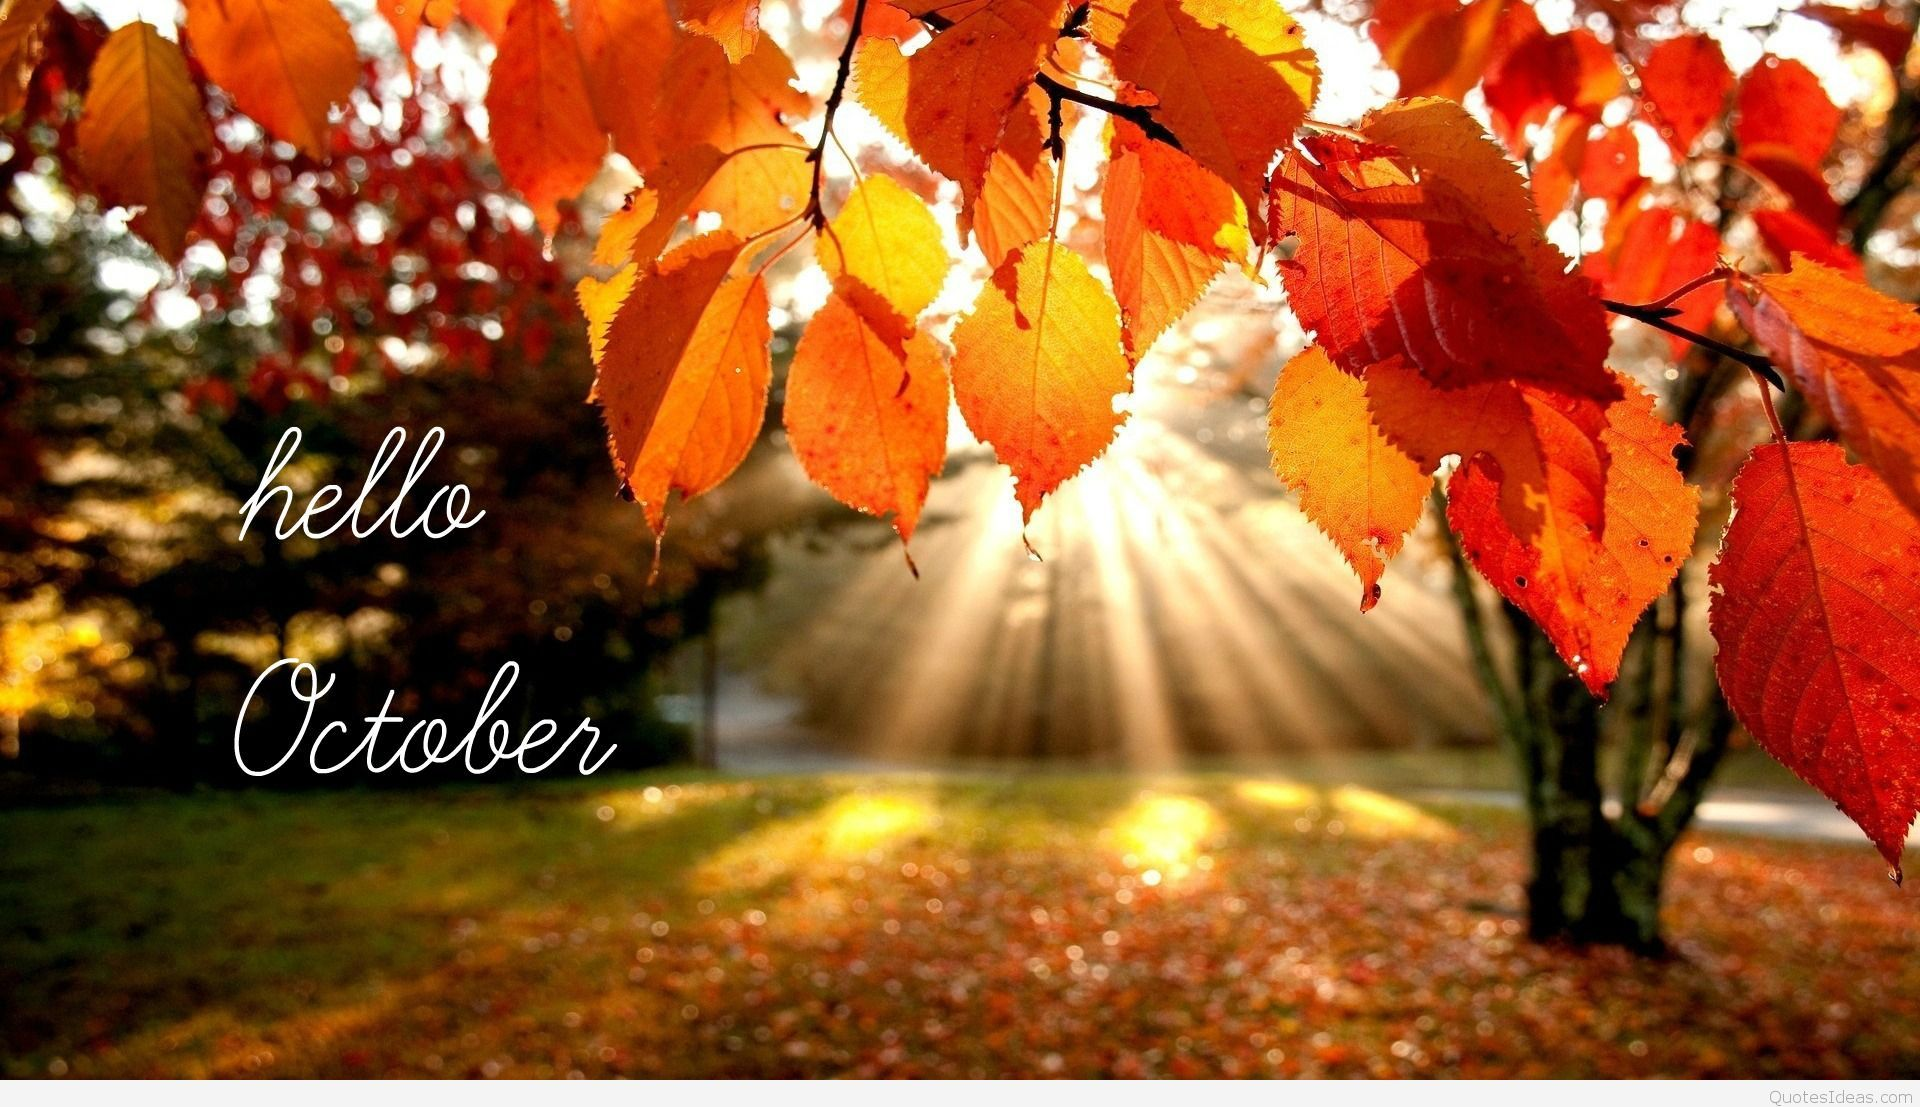 25 October Images ideas | october images, hello october, october